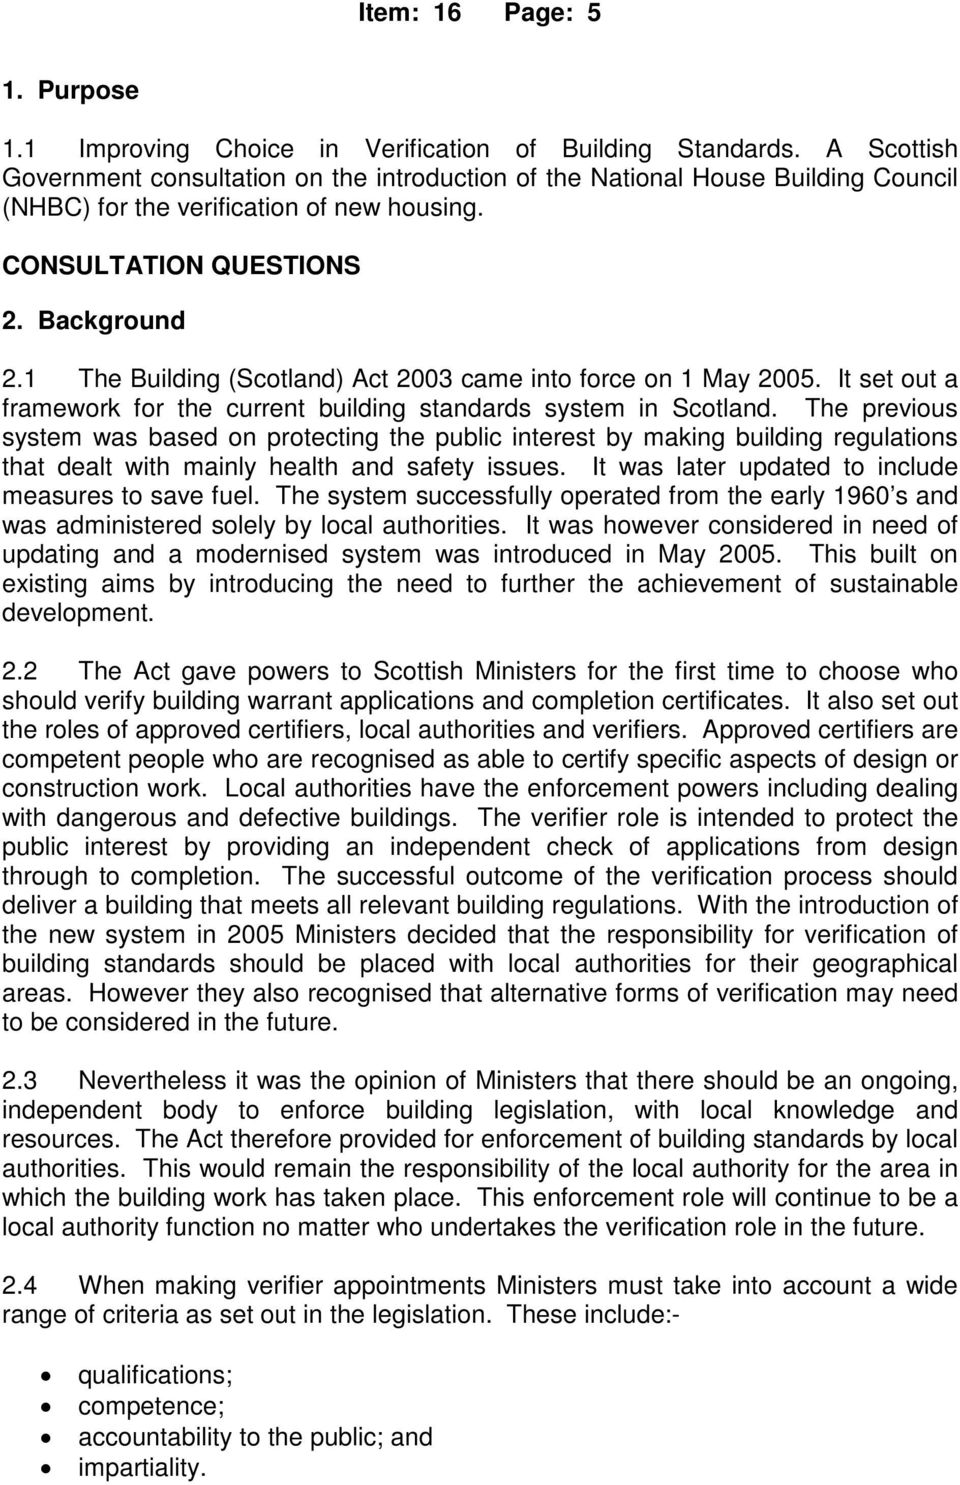 1 The Building (Scotland) Act 2003 came into force on 1 May 2005. It set out a framework for the current building standards system in Scotland.